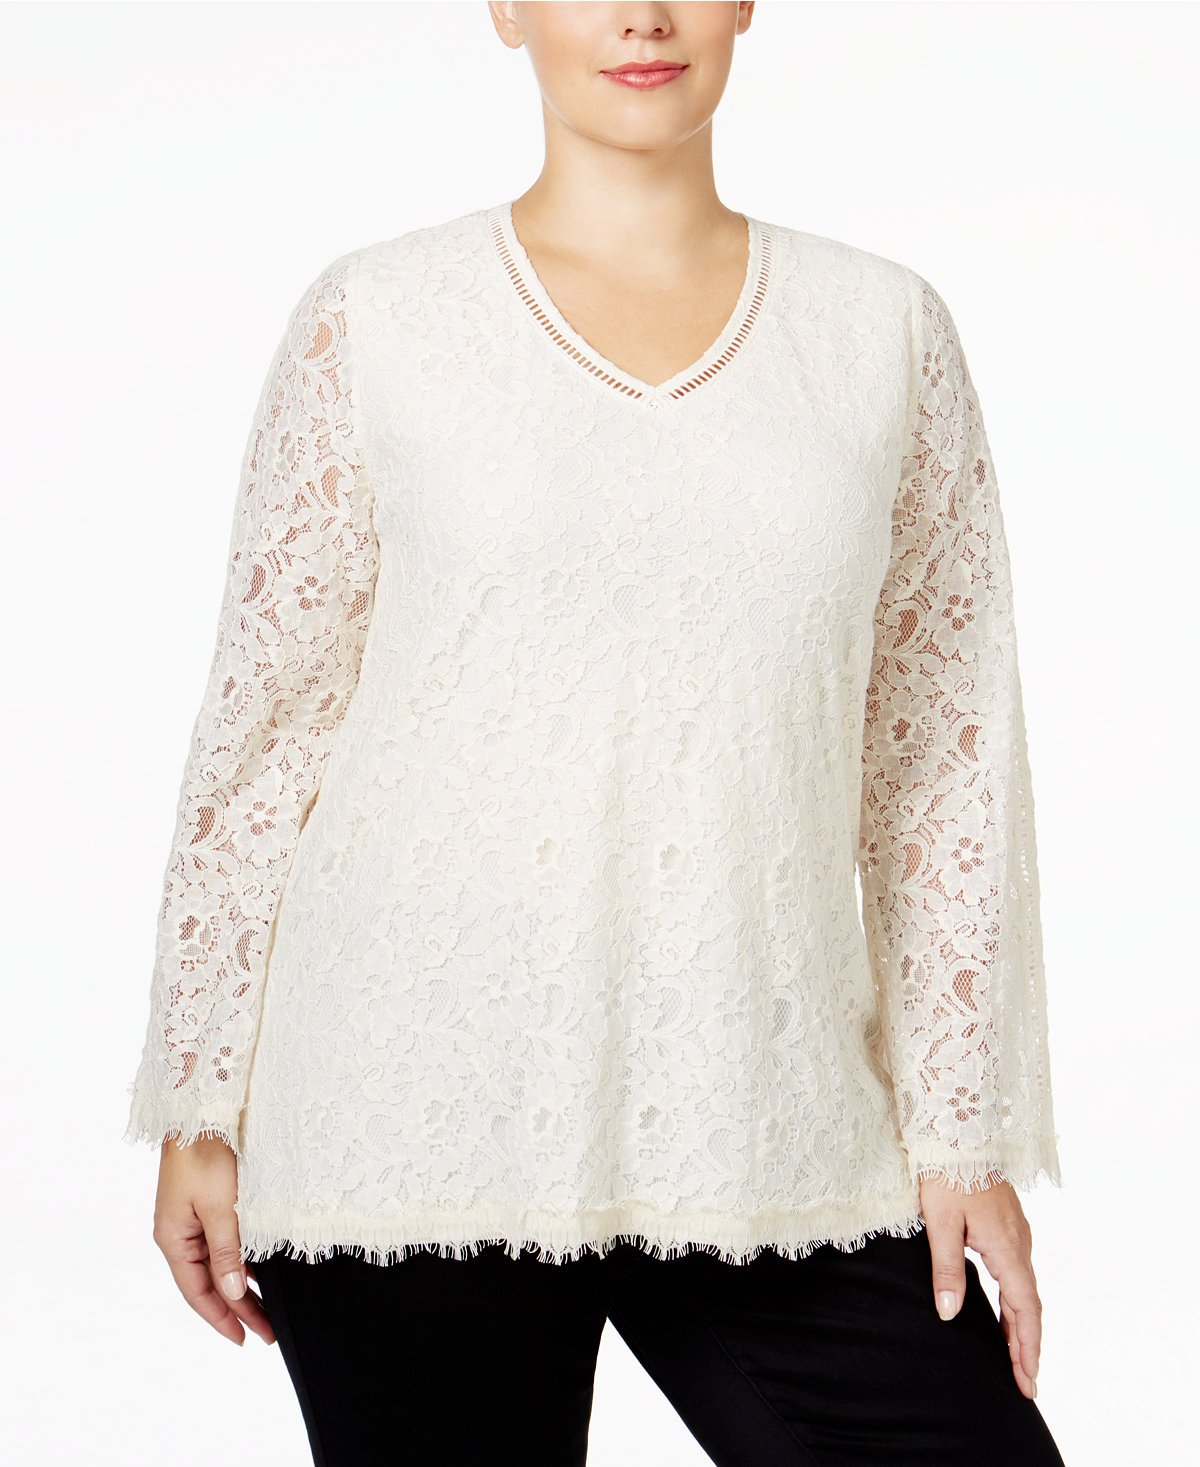 Style & Co. Womens Plus Lace Swing Casual Top Ivory 3X